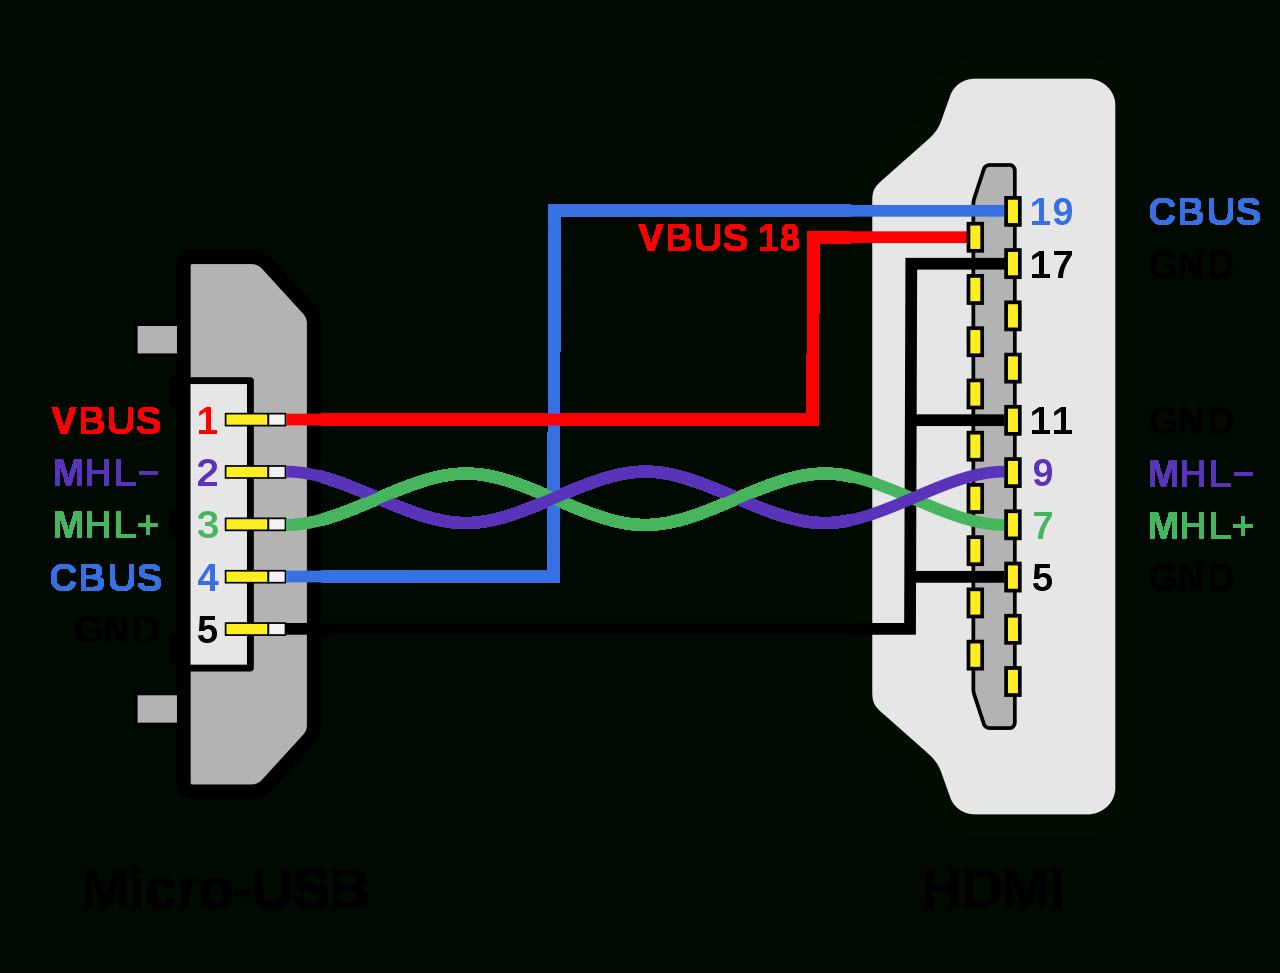 Usb To Av Cables Wiring Diagrams | Best Wiring Library - Usb To Av Cable Wiring Diagram